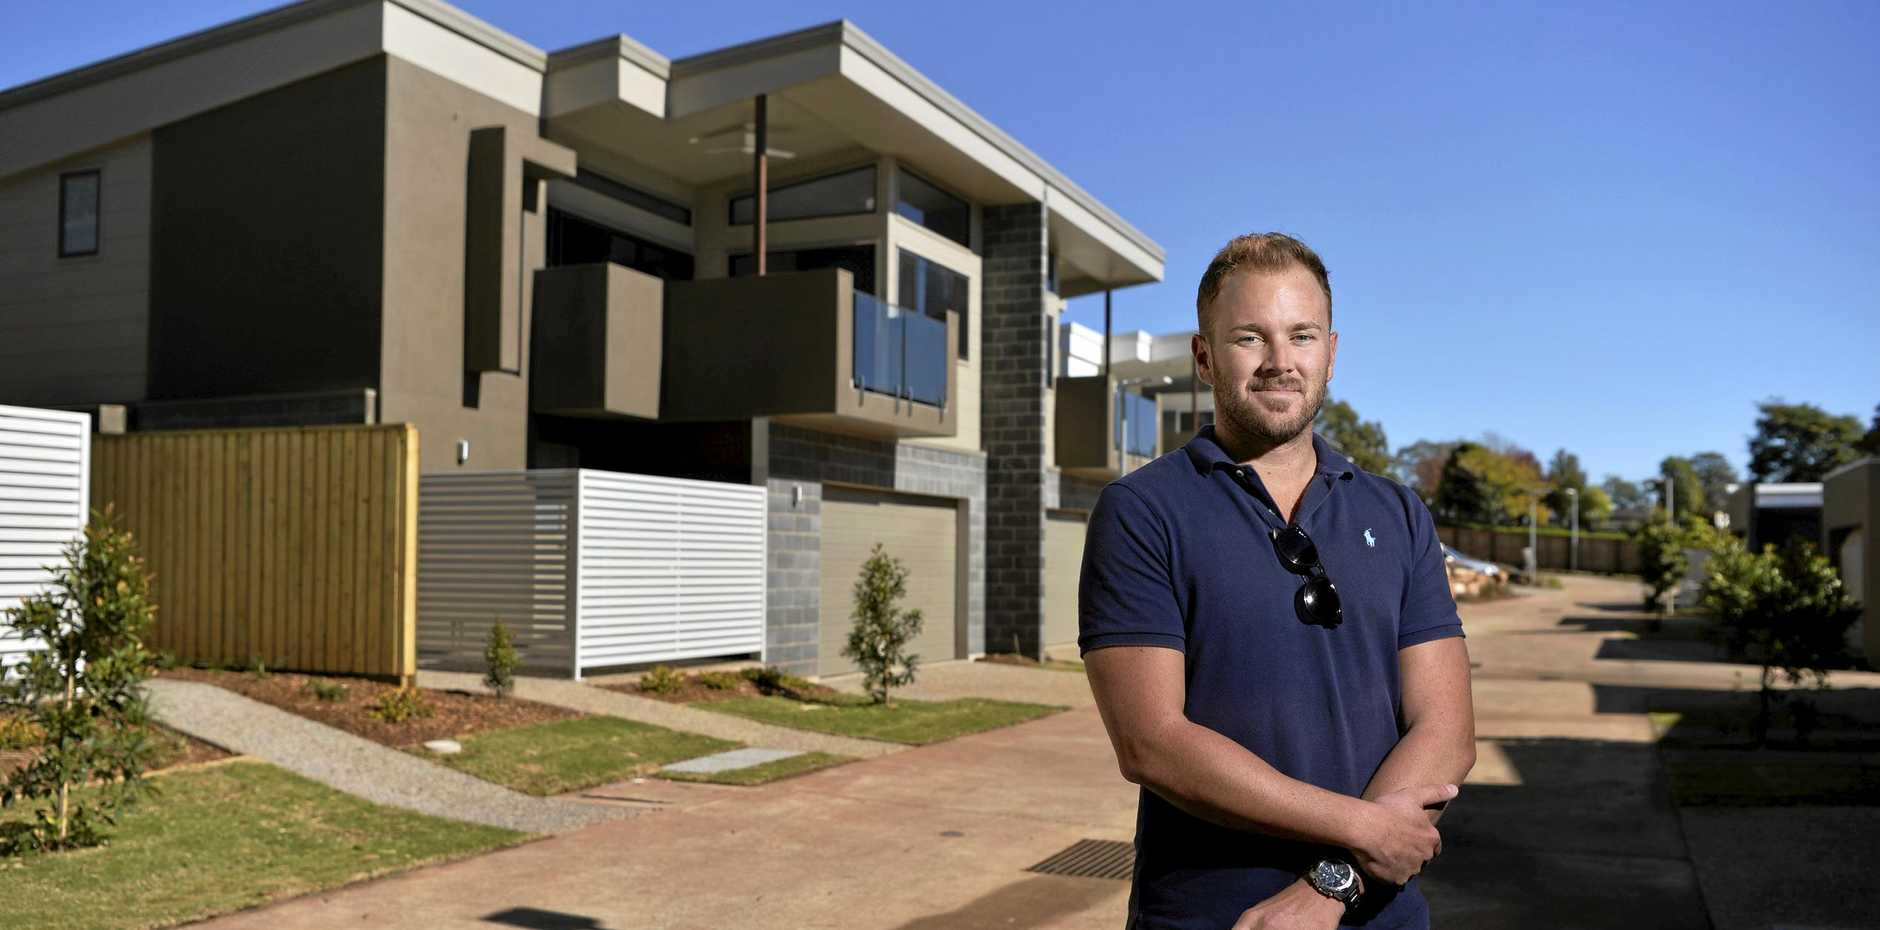 Vantage East Toowoomba developer and Weldev Group director Adam Webb on site at the premium gated community on Tourist Rd, Tuesday, June 11, 2019.